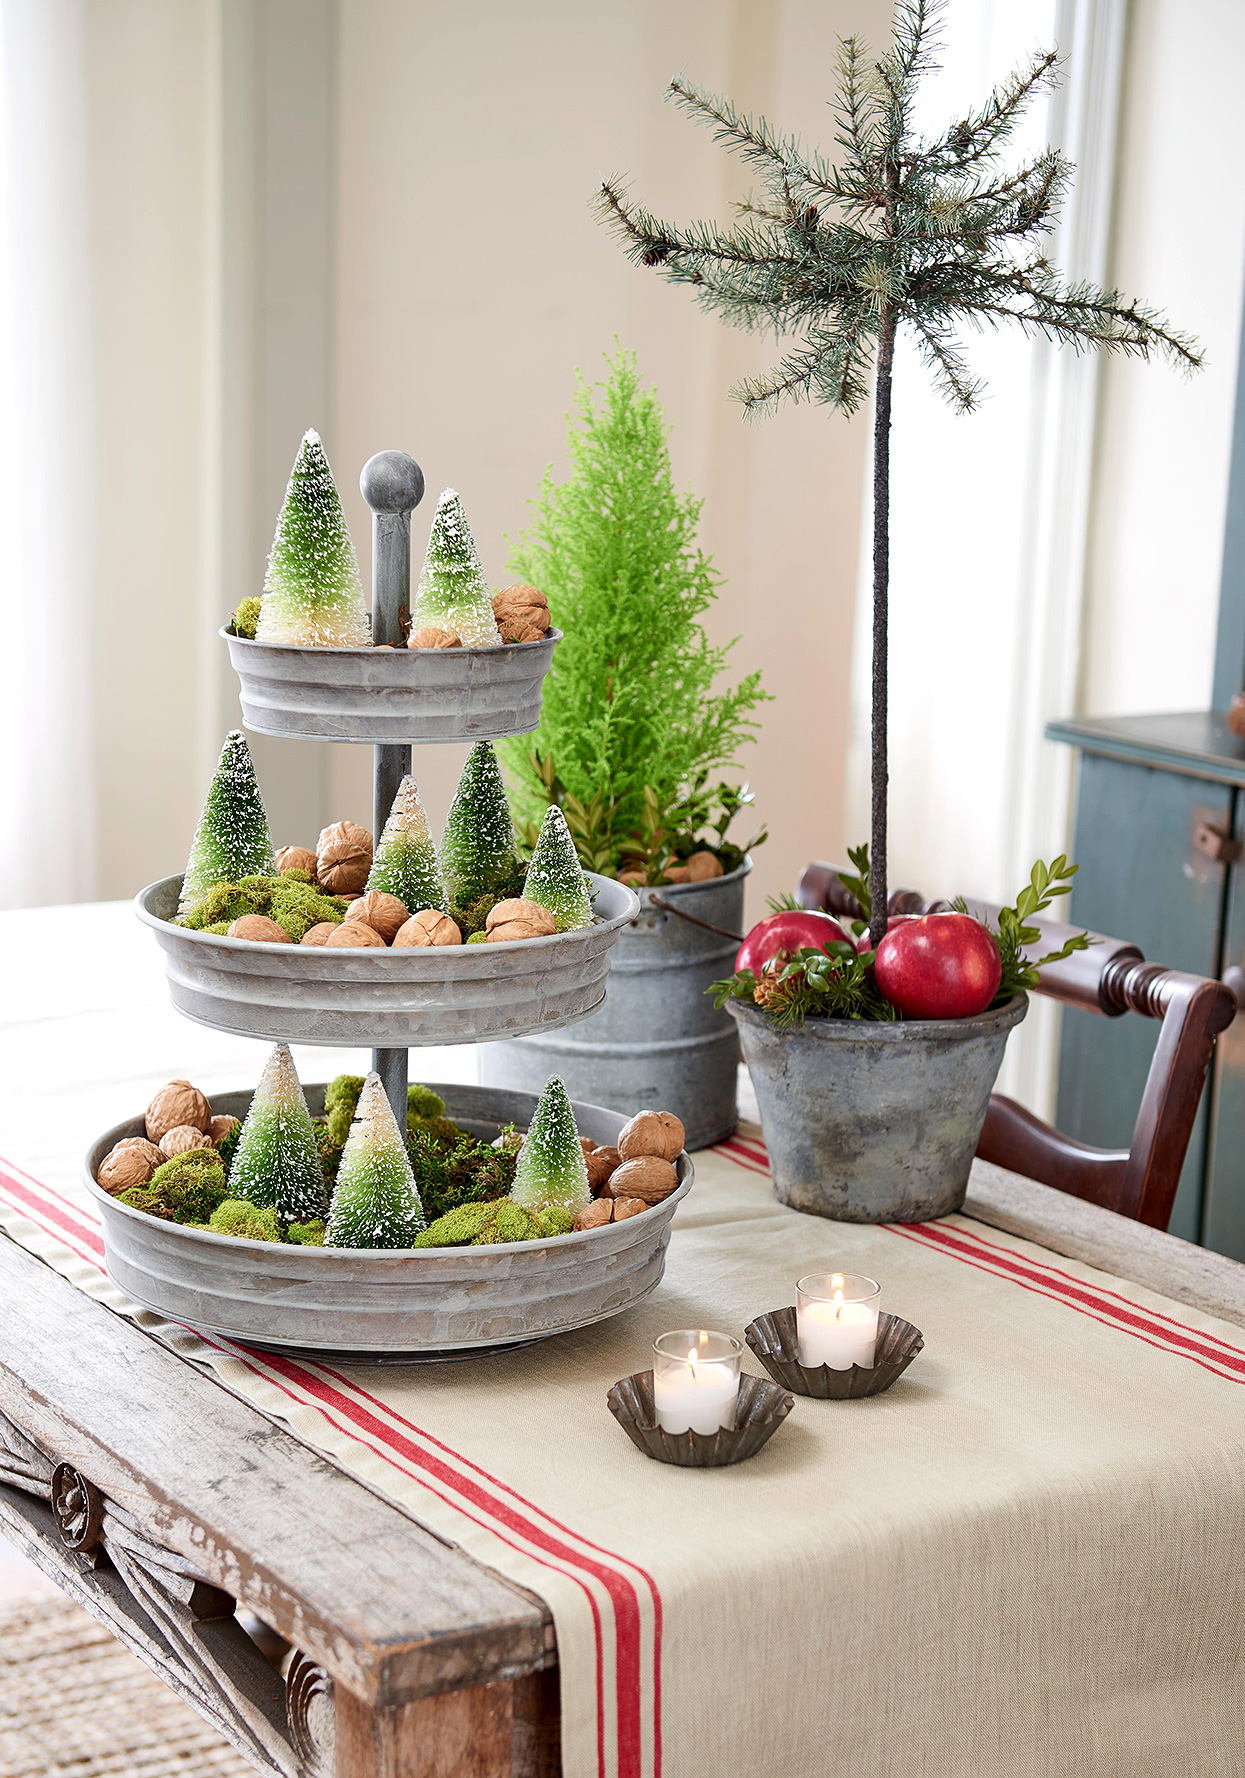 Christmas table centerpiece with trees and chestnuts on tiered tray